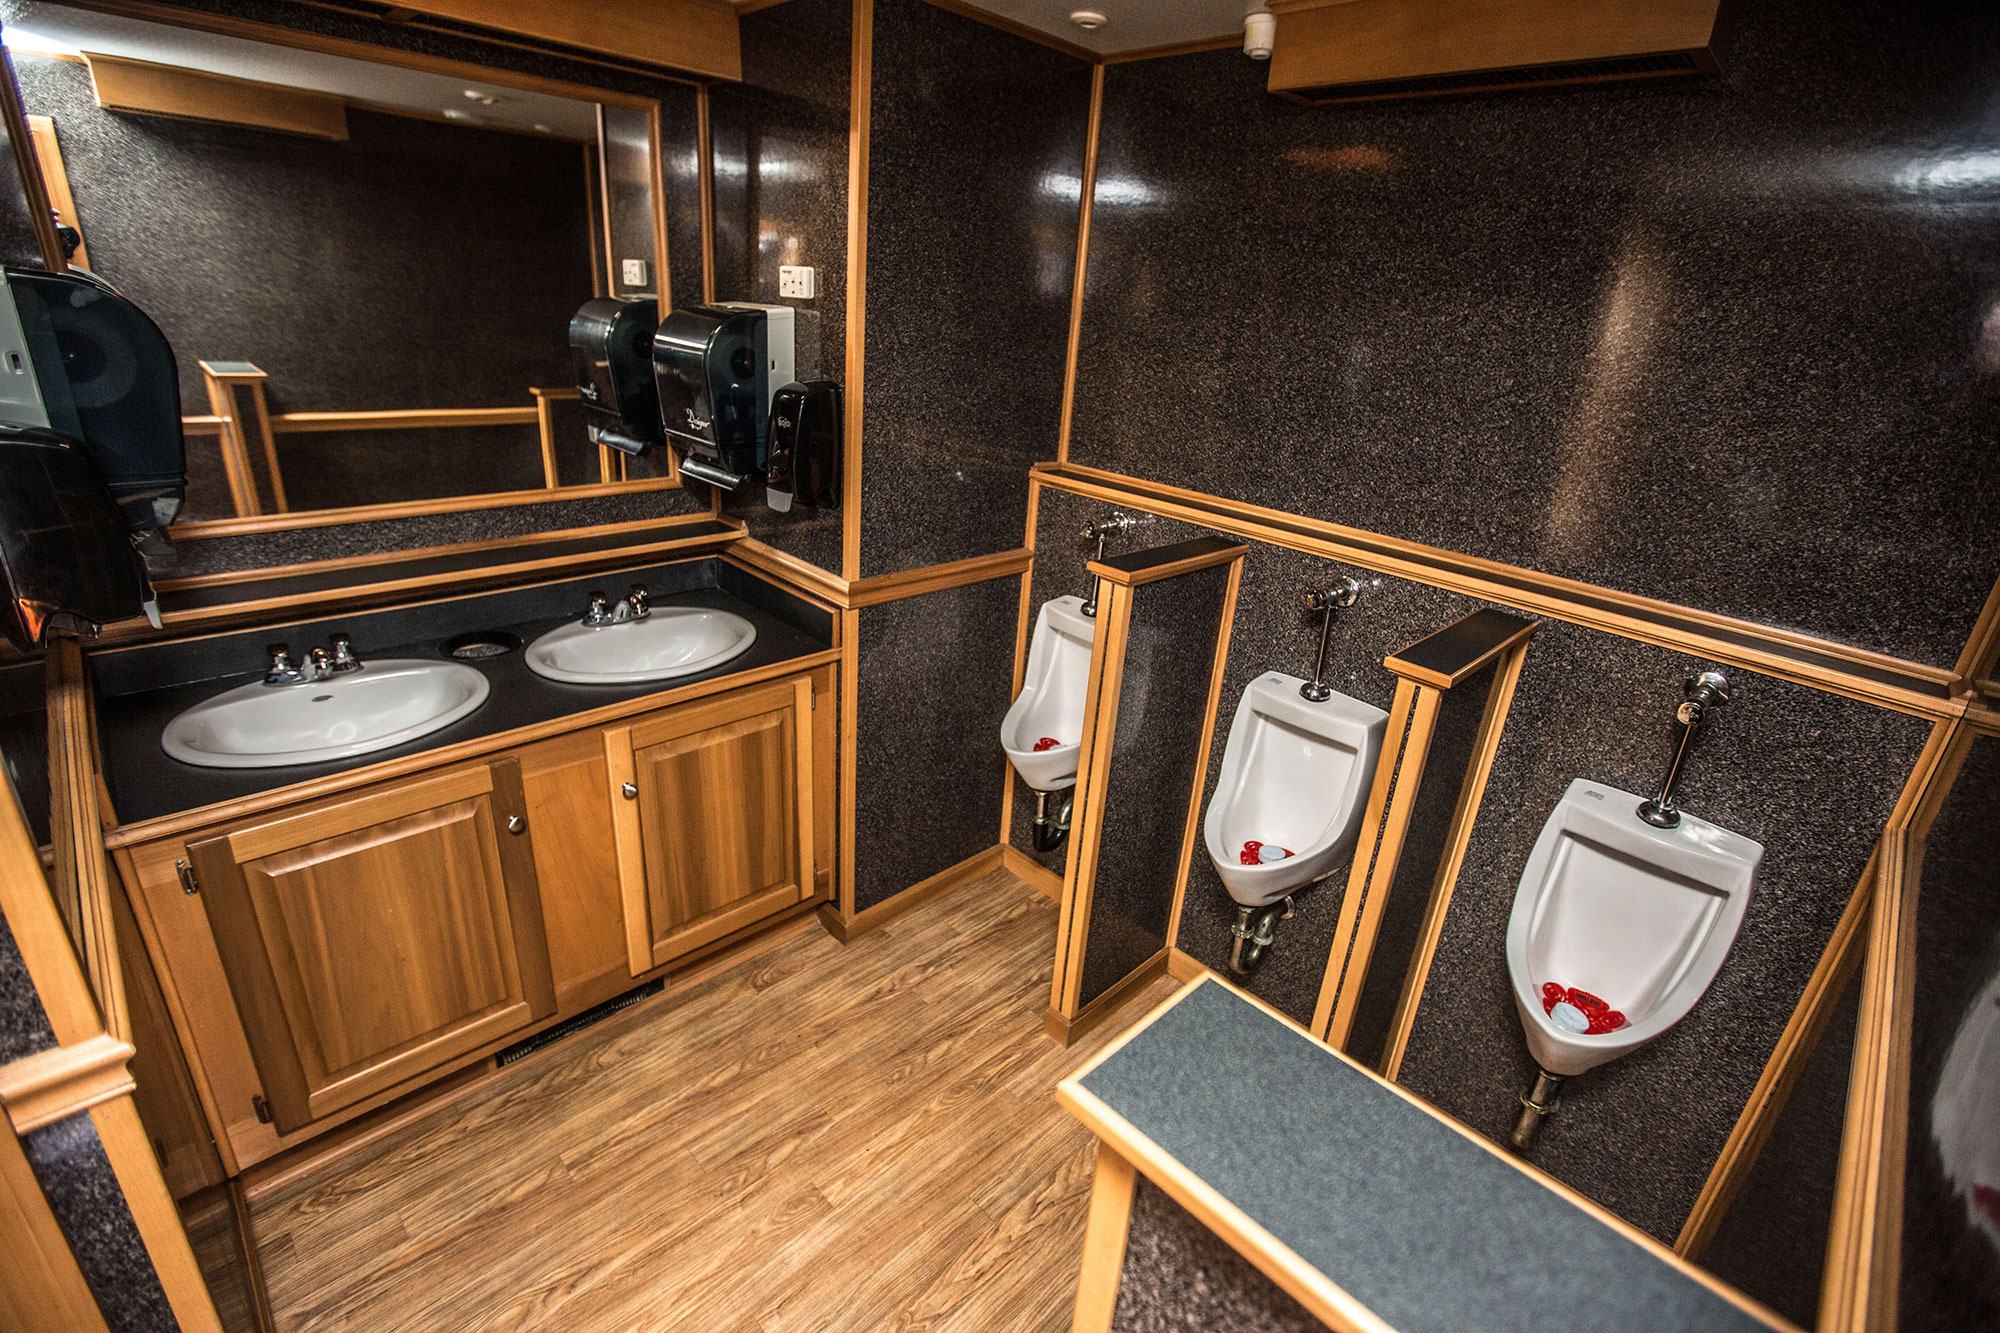 Interior of the Elegance 400 portable washroom for special events